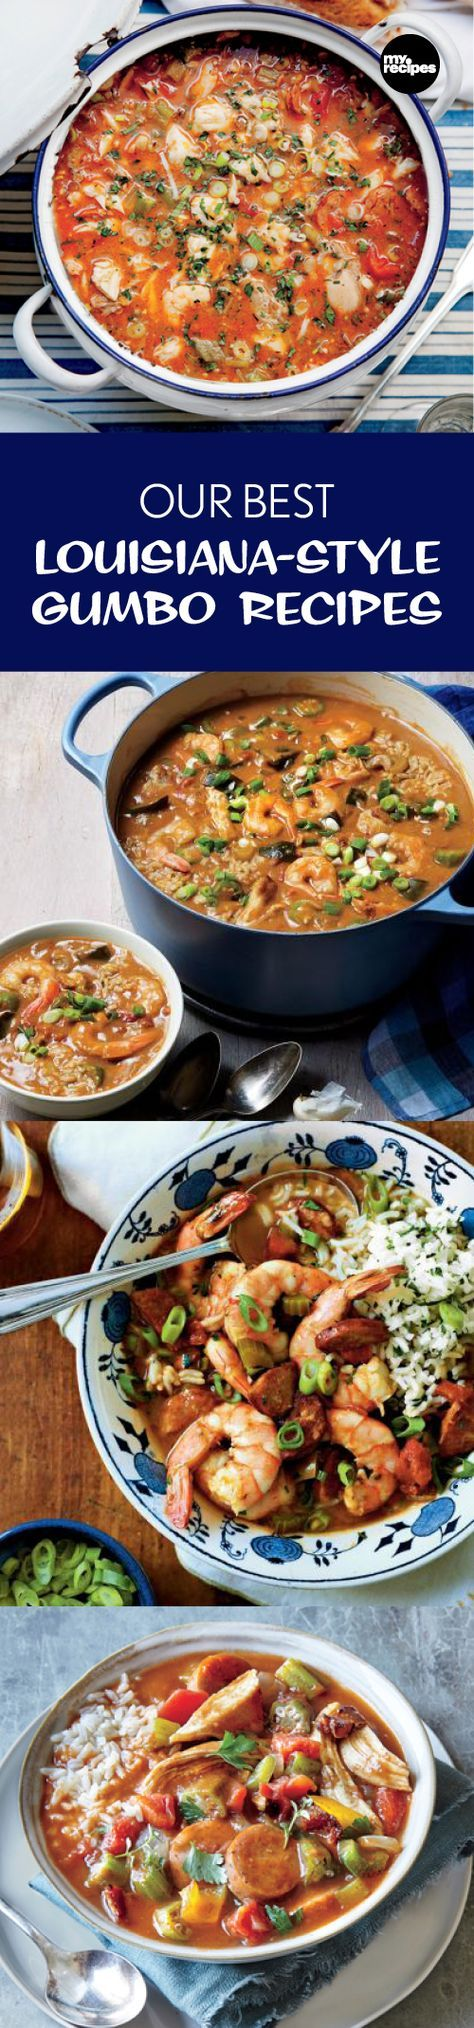 1000+ ideas about Best Gumbo Recipe on Pinterest | Gumbo ...